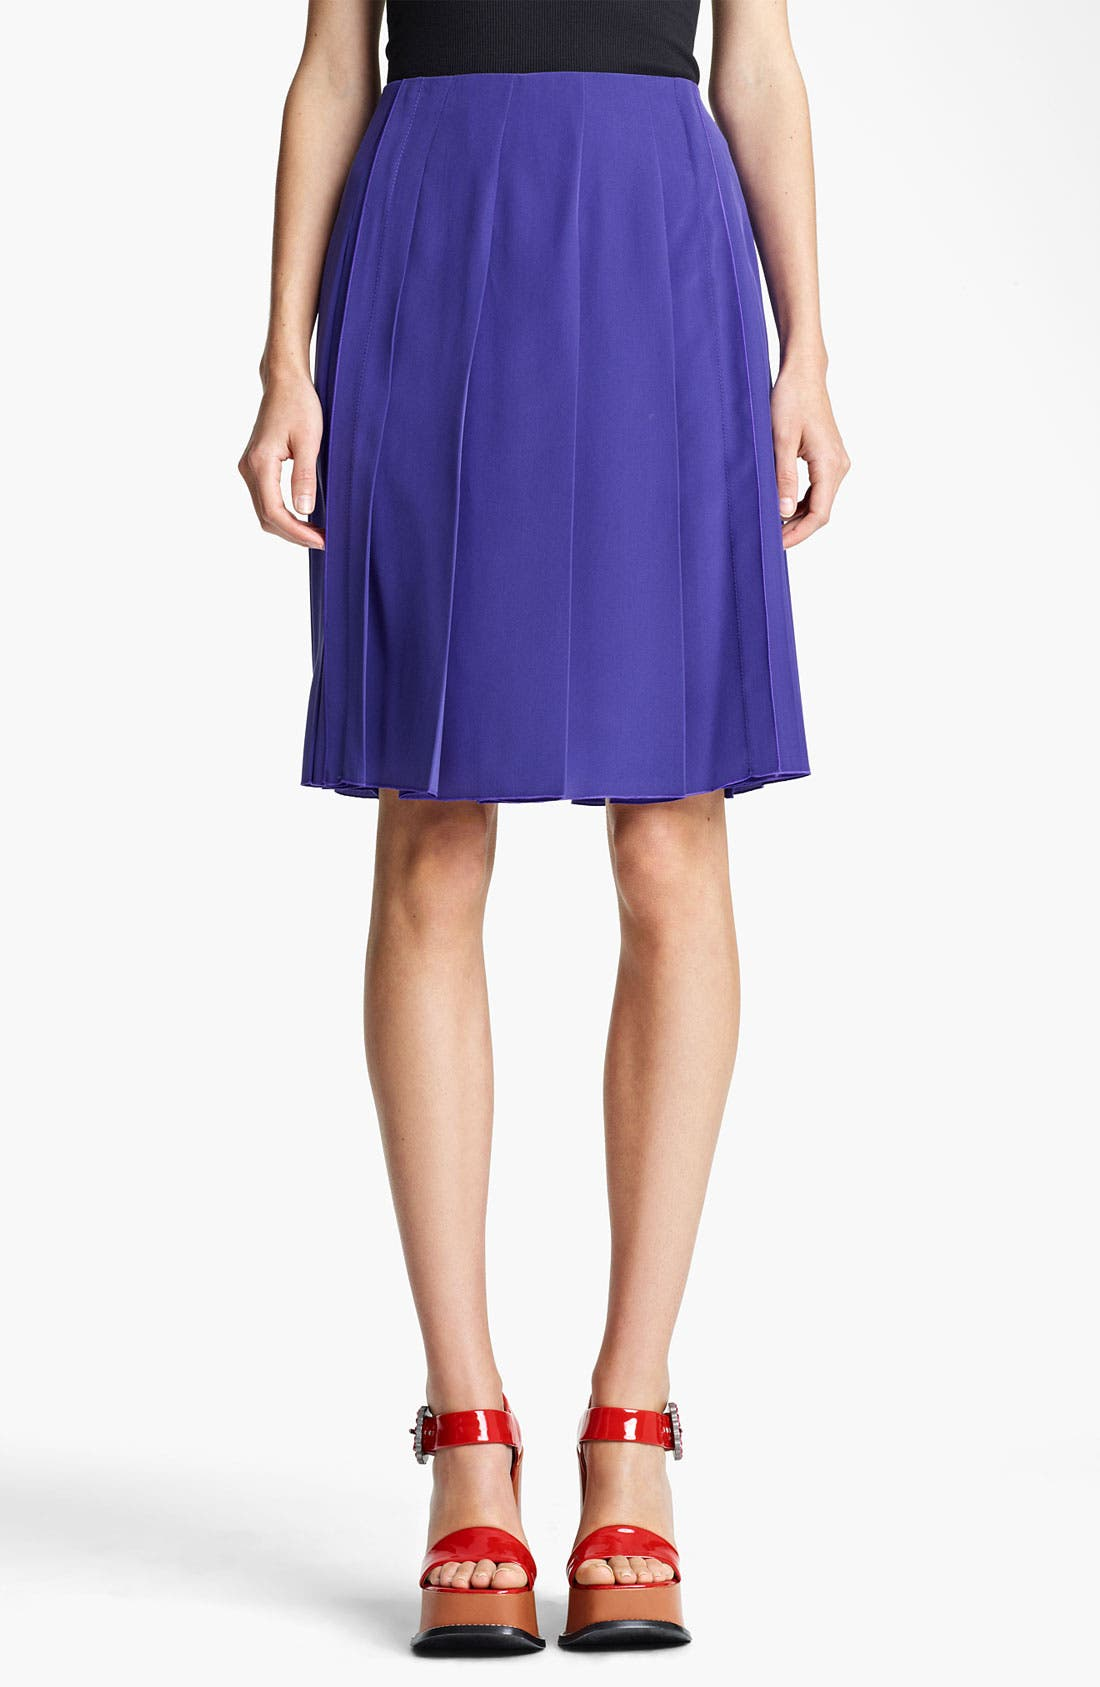 Alternate Image 1 Selected - MARC JACOBS Pleated Skirt